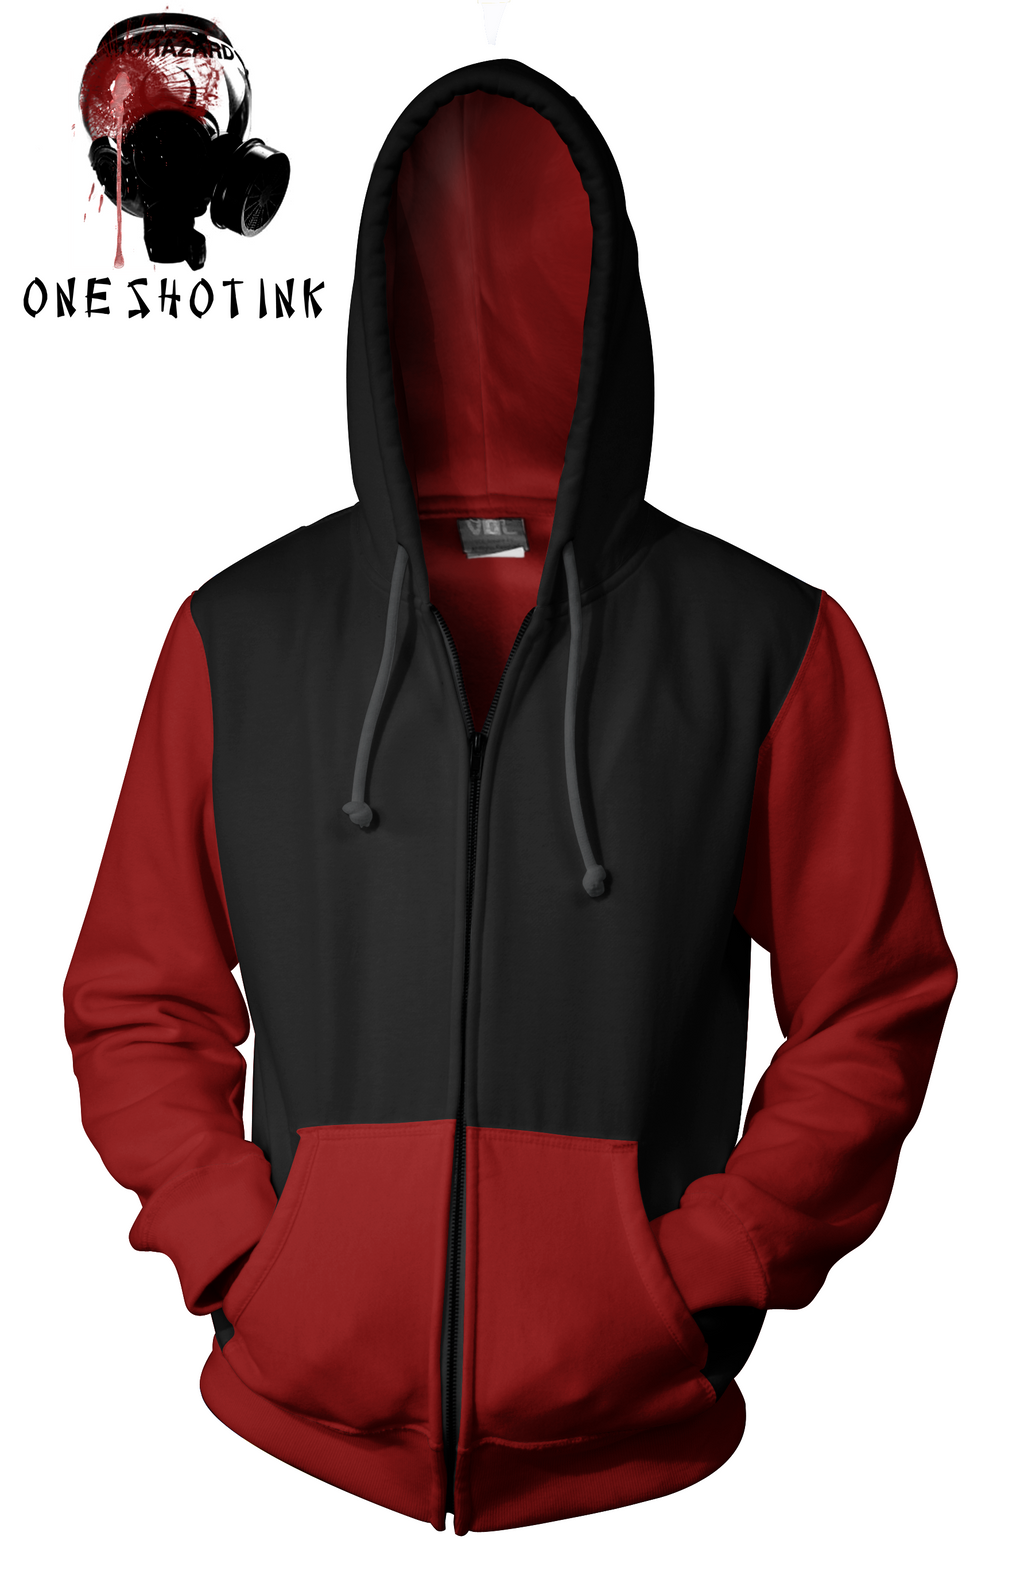 We have a variety of Black And Red Sweatshirts & Hoodies and hoodies to fit your fashion needs. Tell the world how you feel or rock a funny saying with your outerwear. Black And Red Sweatshirts & Hoodies and hoodies are great gifts for any occasion.